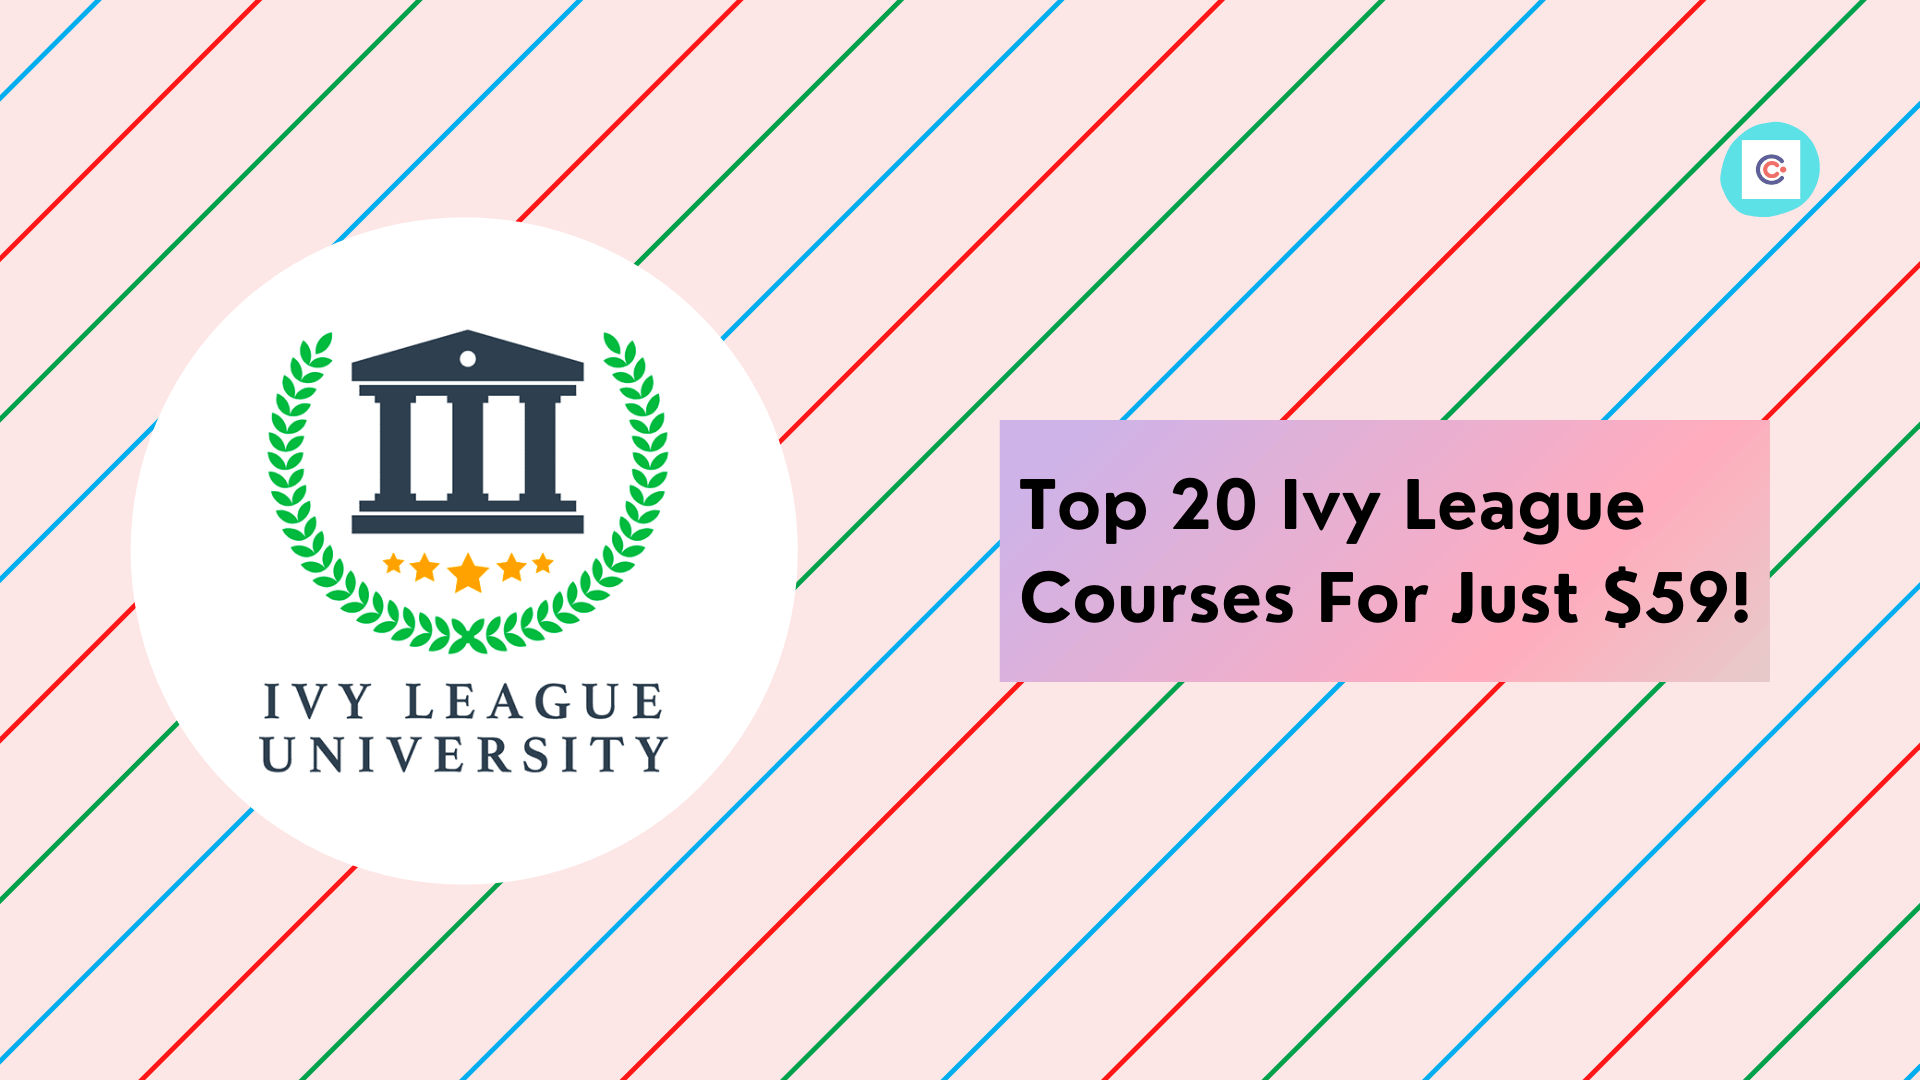 Top 20 Ivy League Courses For Just $59!